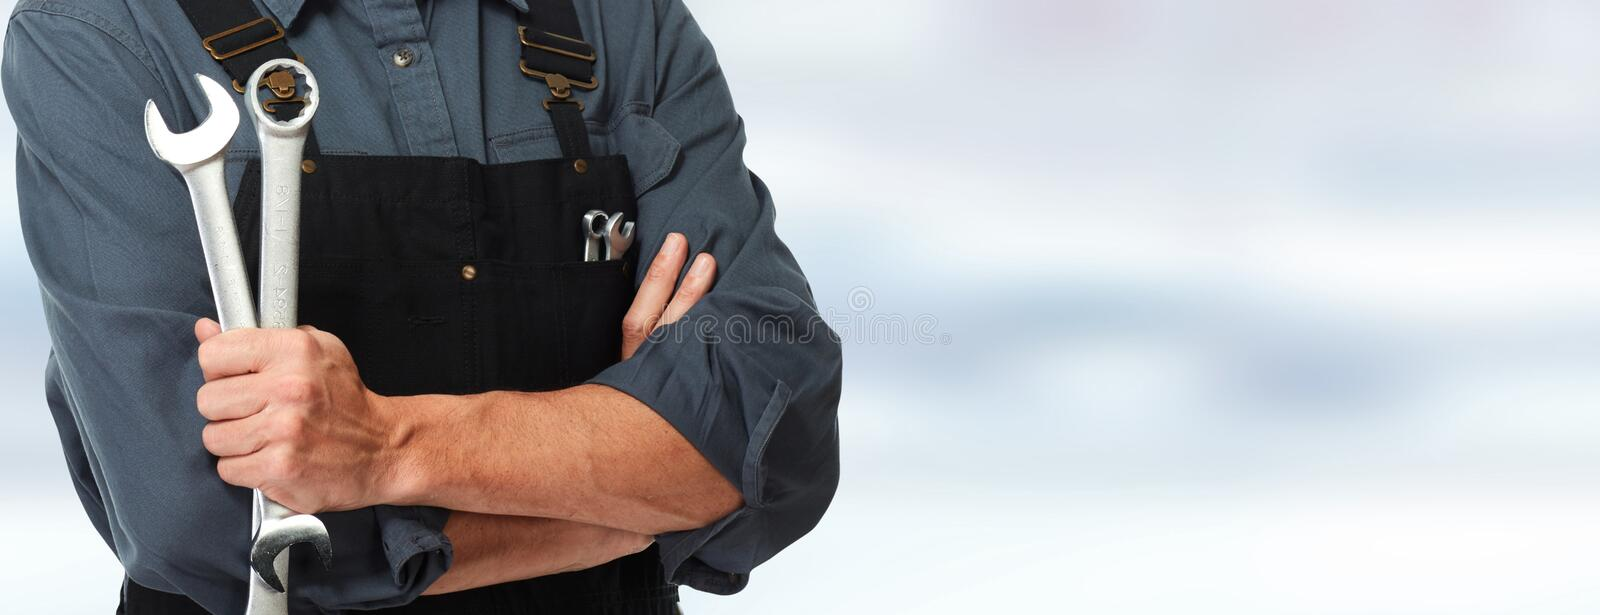 Hands of car mechanic with wrench stock photography